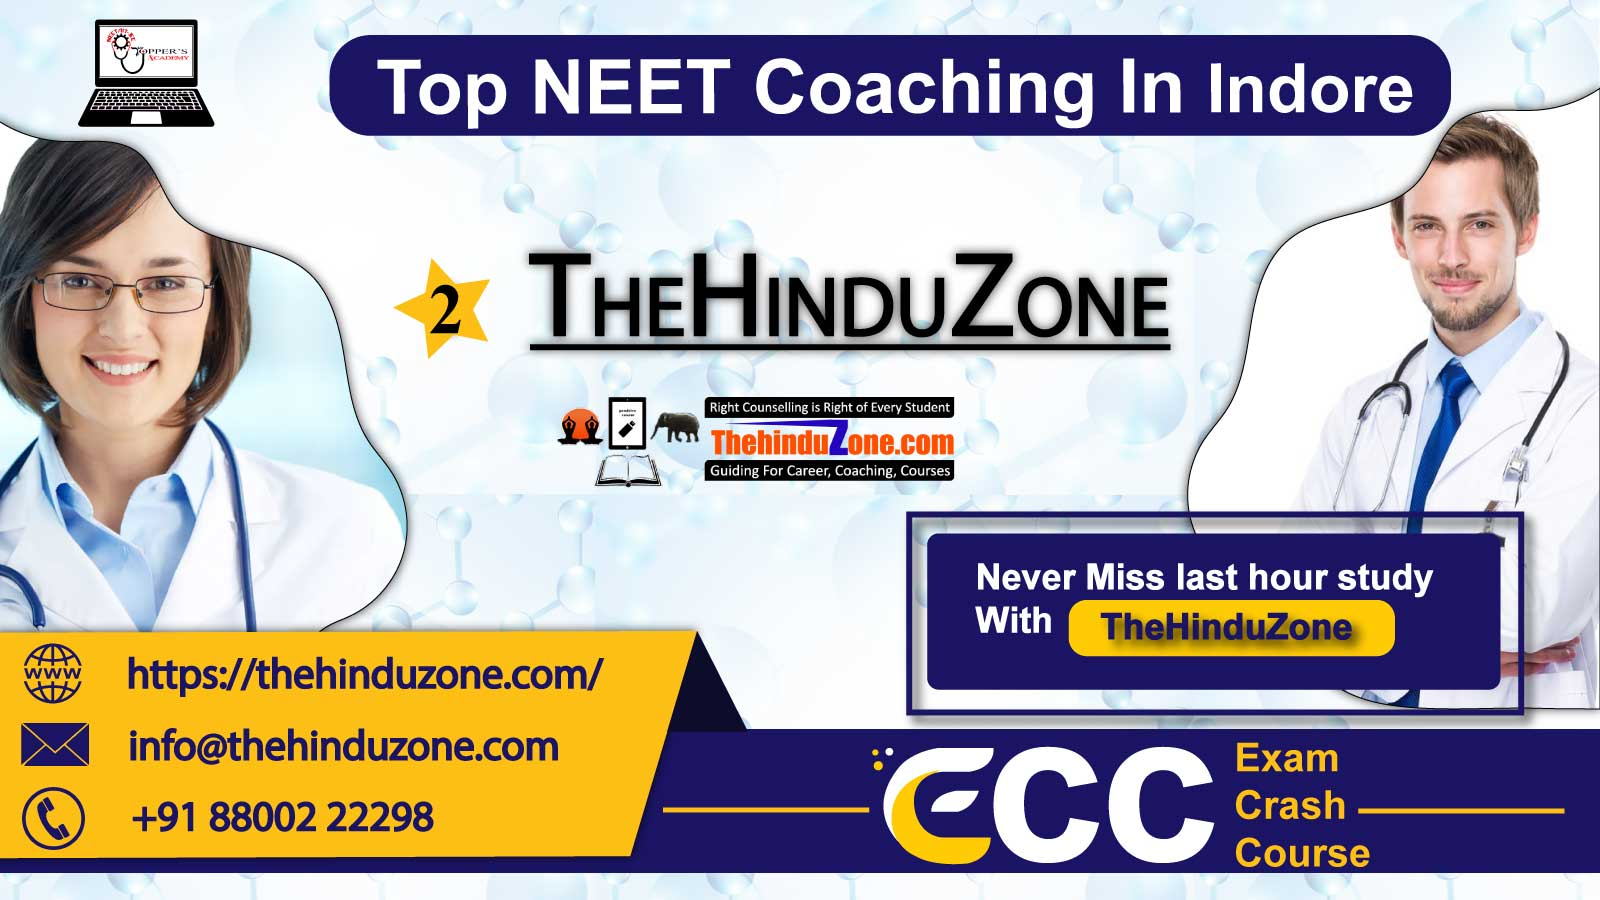 Thehinduzone NEET Coaching In In Indore